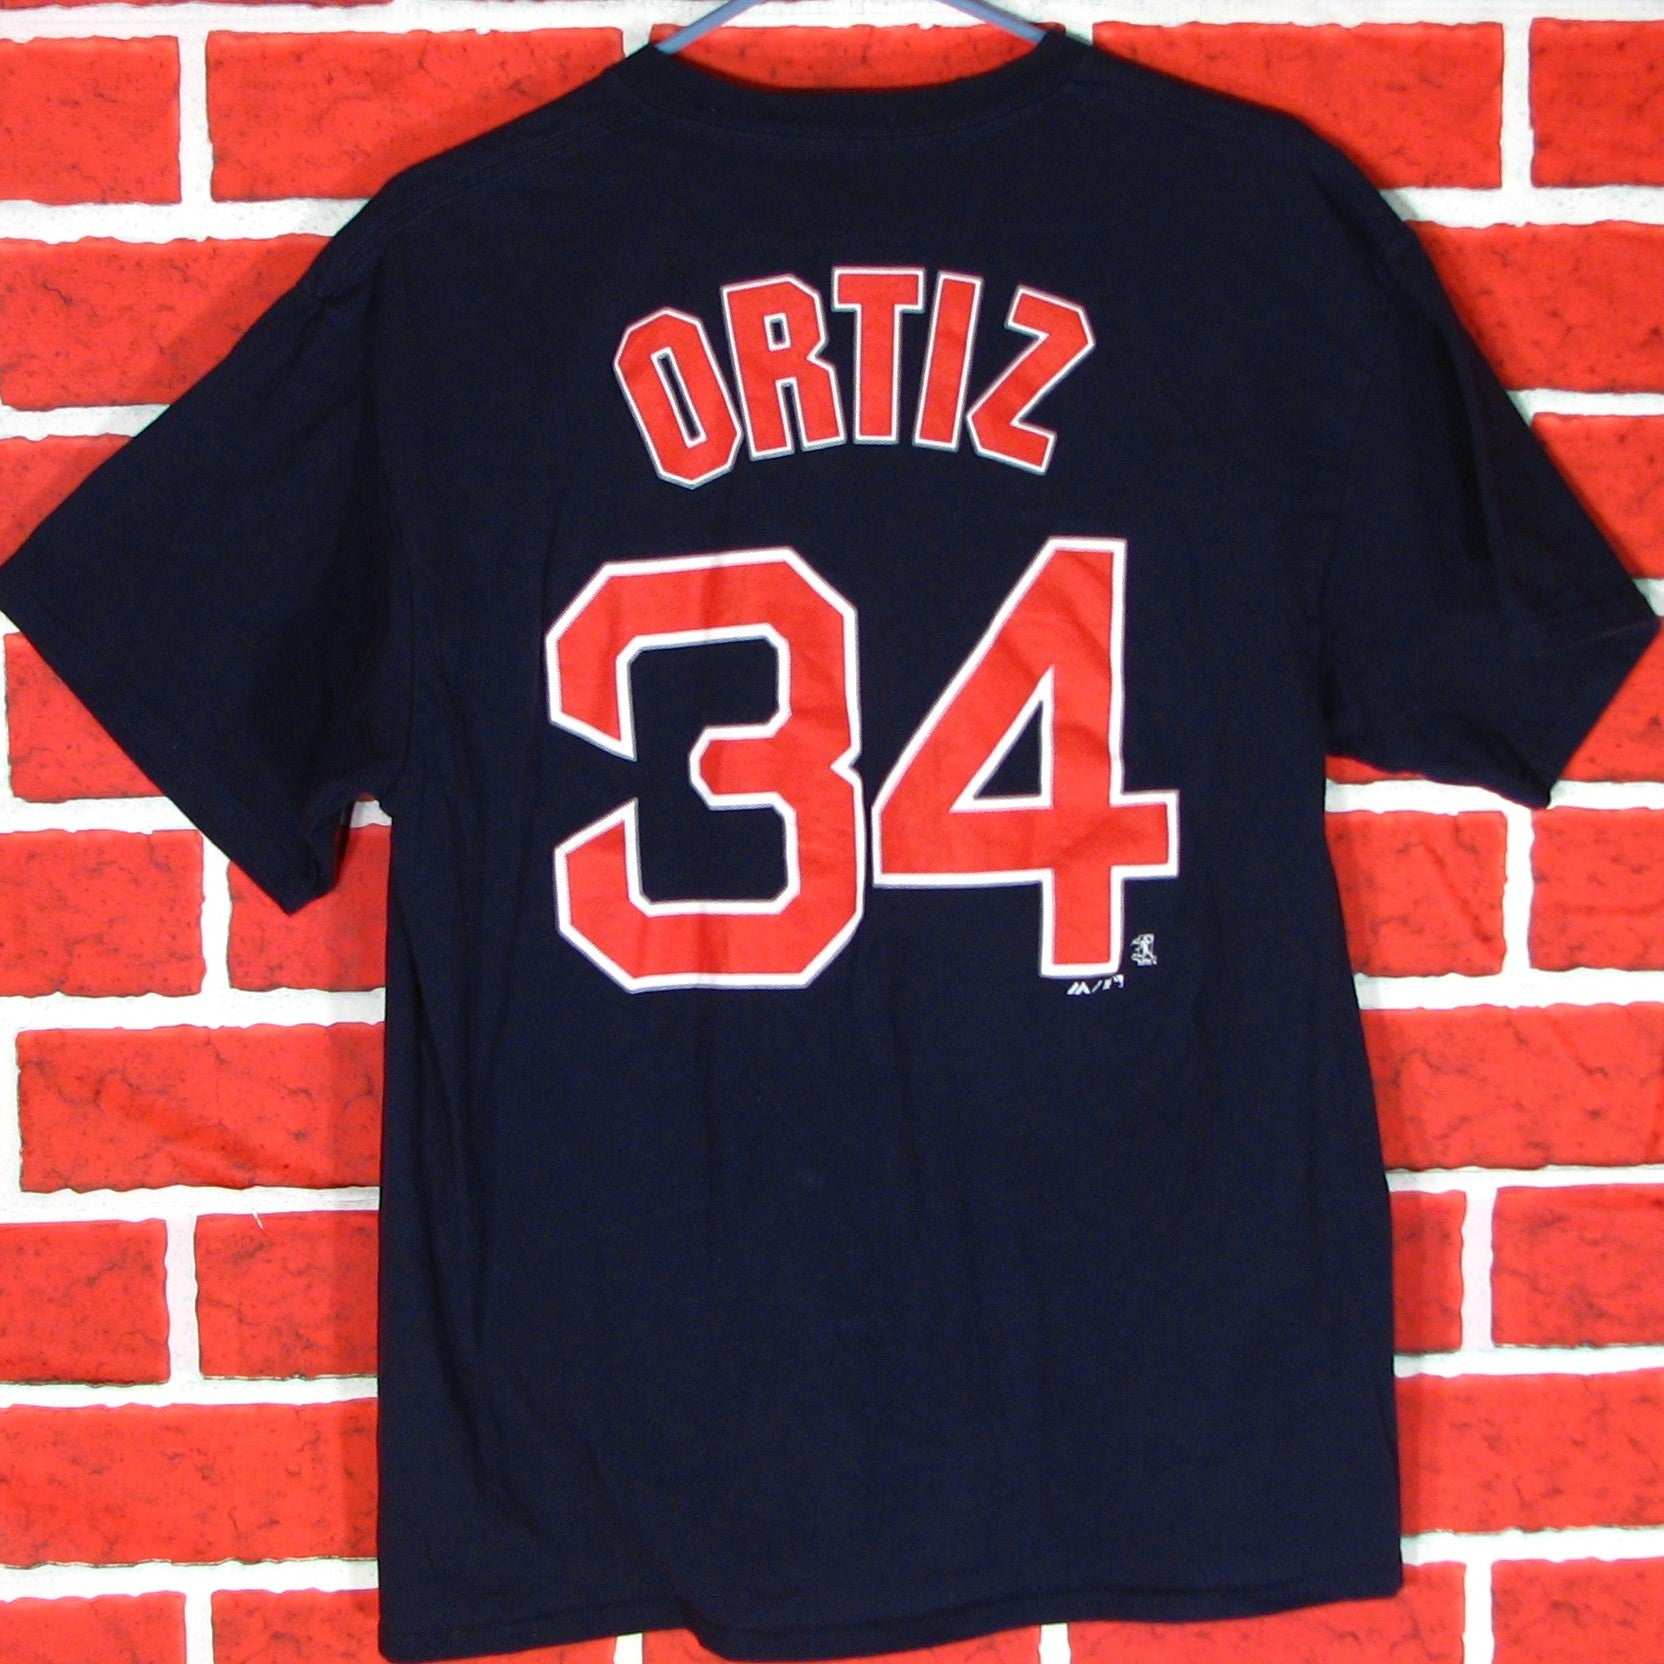 Boston Red Sox Ortiz # 34 T-Shirt